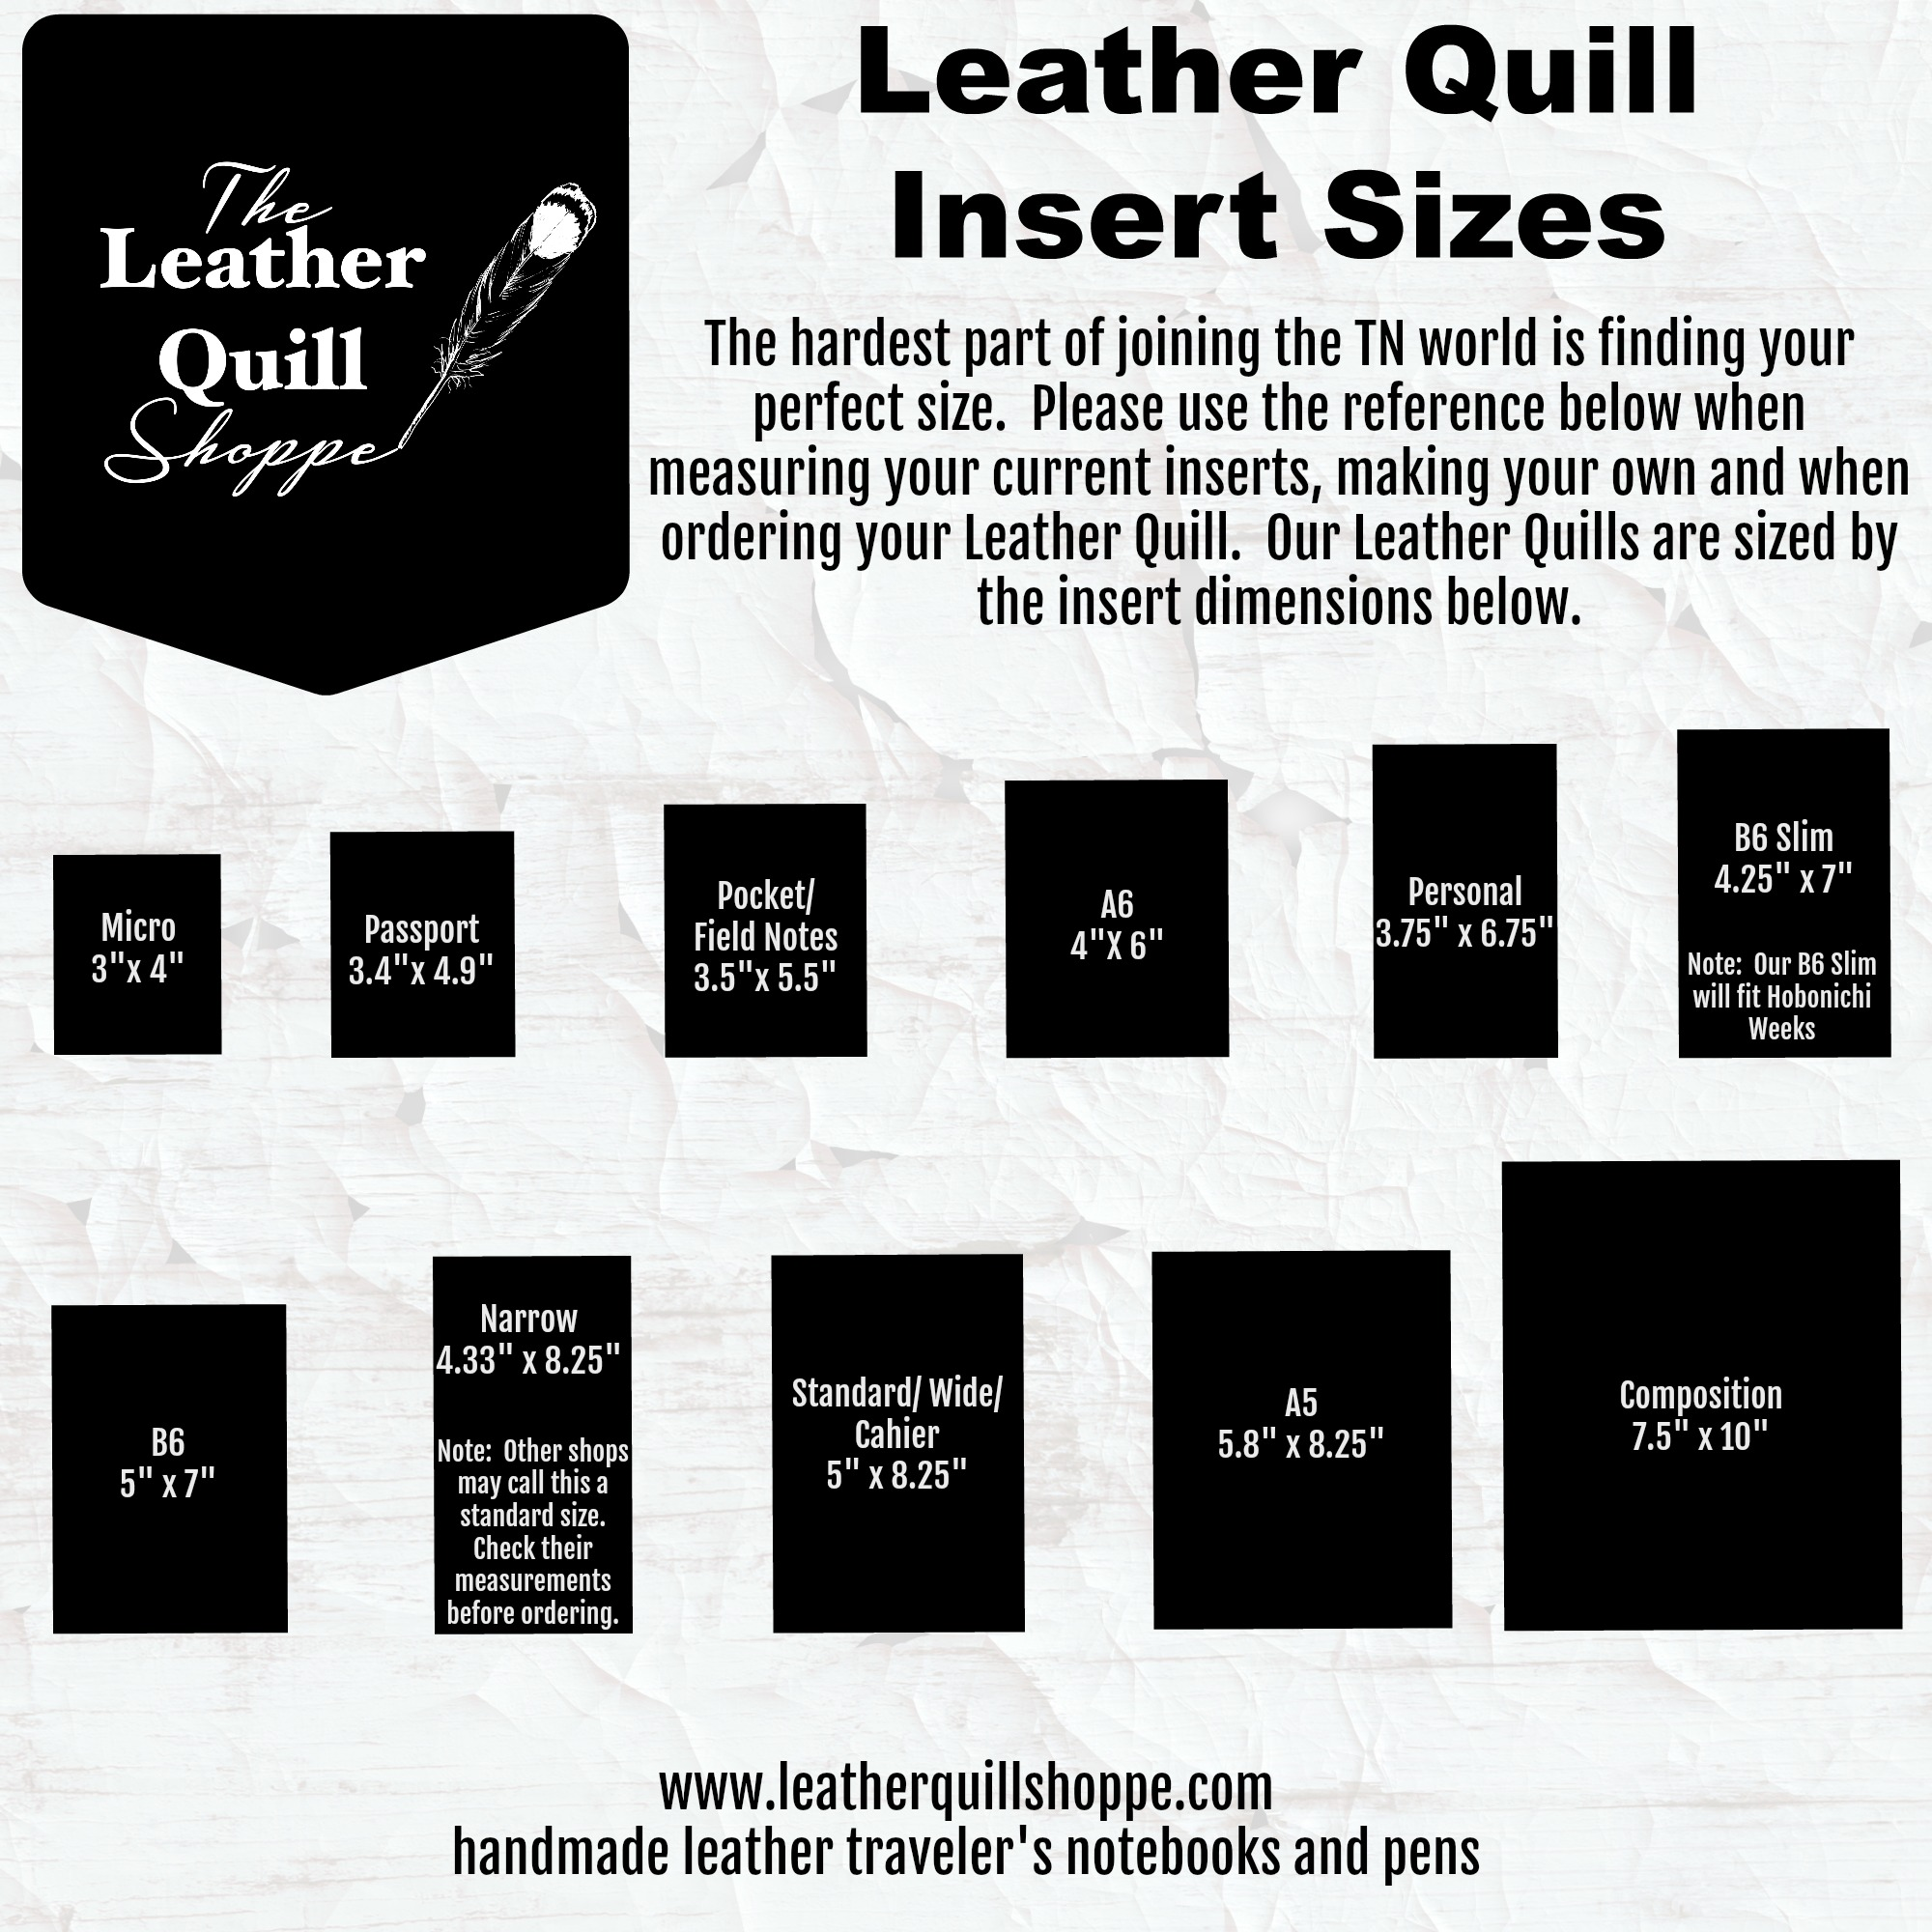 These sizes are the most common Traveler's Notebook insert sizes.  Sizing will vary depending on the maker.  Please use this as a guide only for Leather Quill Shoppe products.